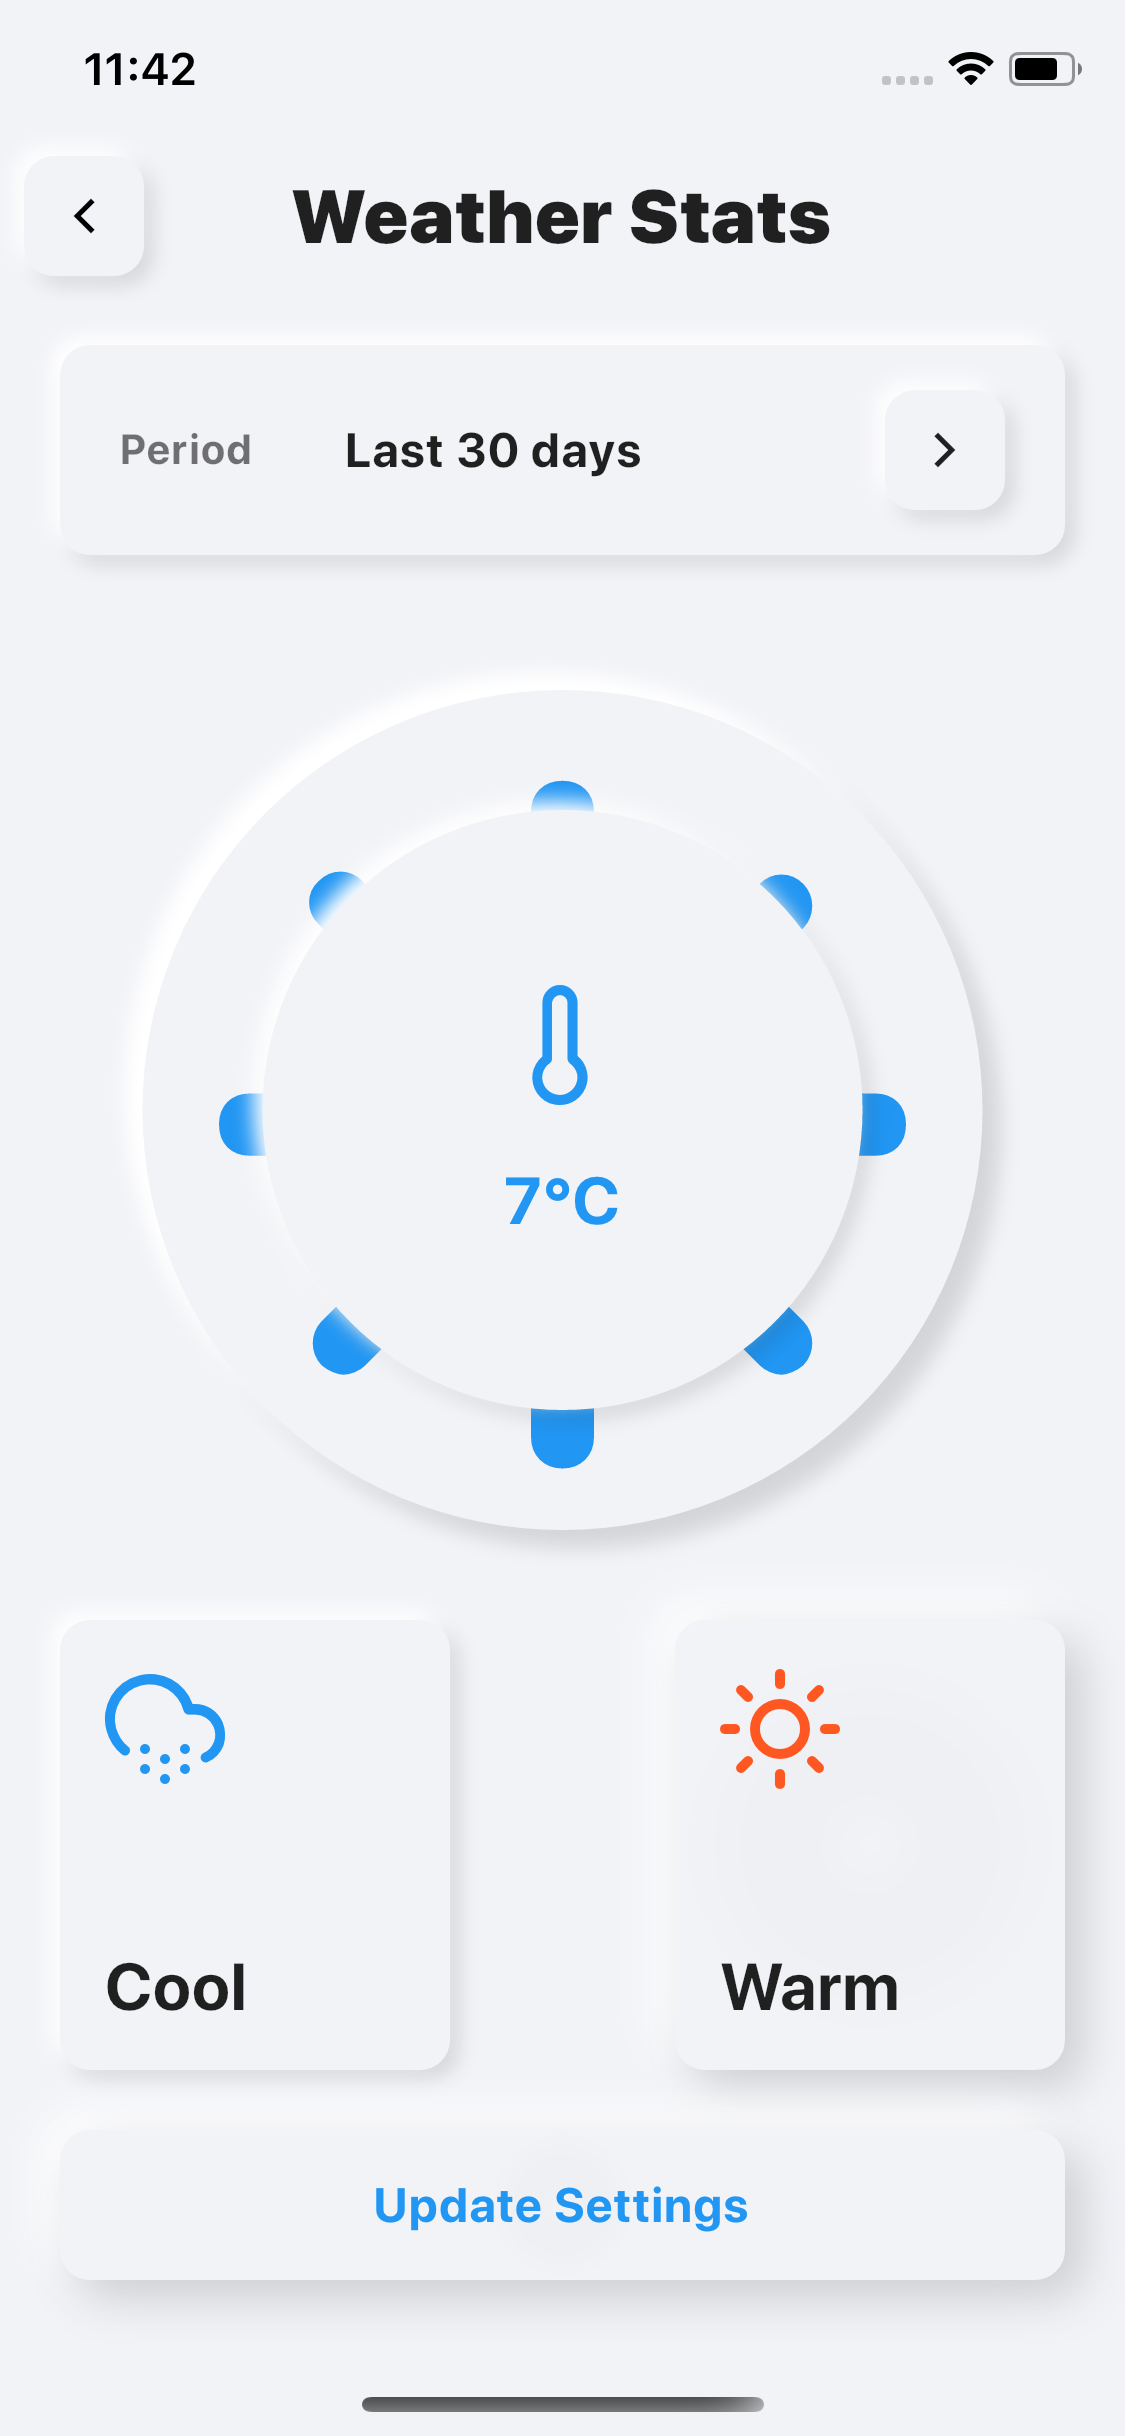 this beautiful UI comes from https://github.com/JideGuru/weather_neumorphism_ui